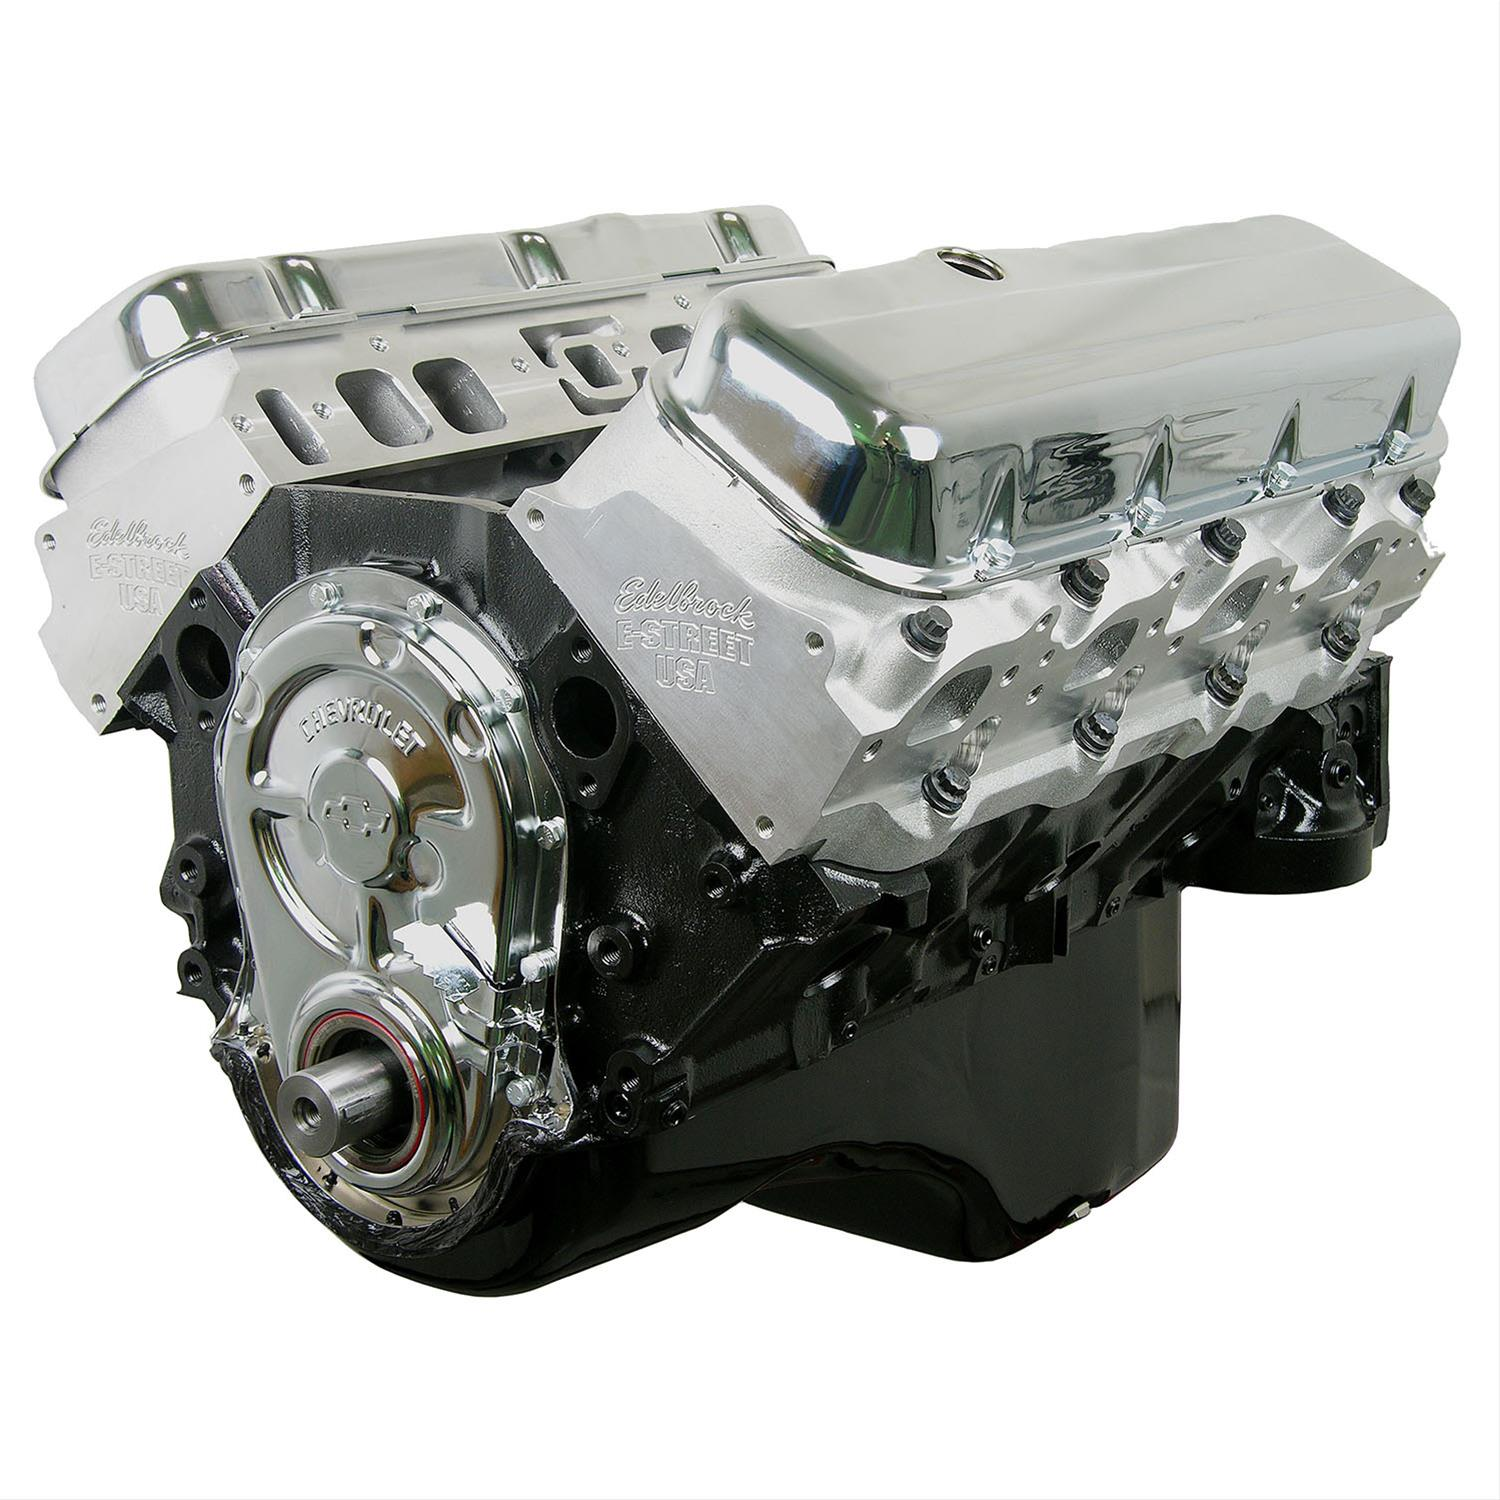 ATK High Performance GM 454 525 HP Stage 1 Long Block Crate Engines HP451P